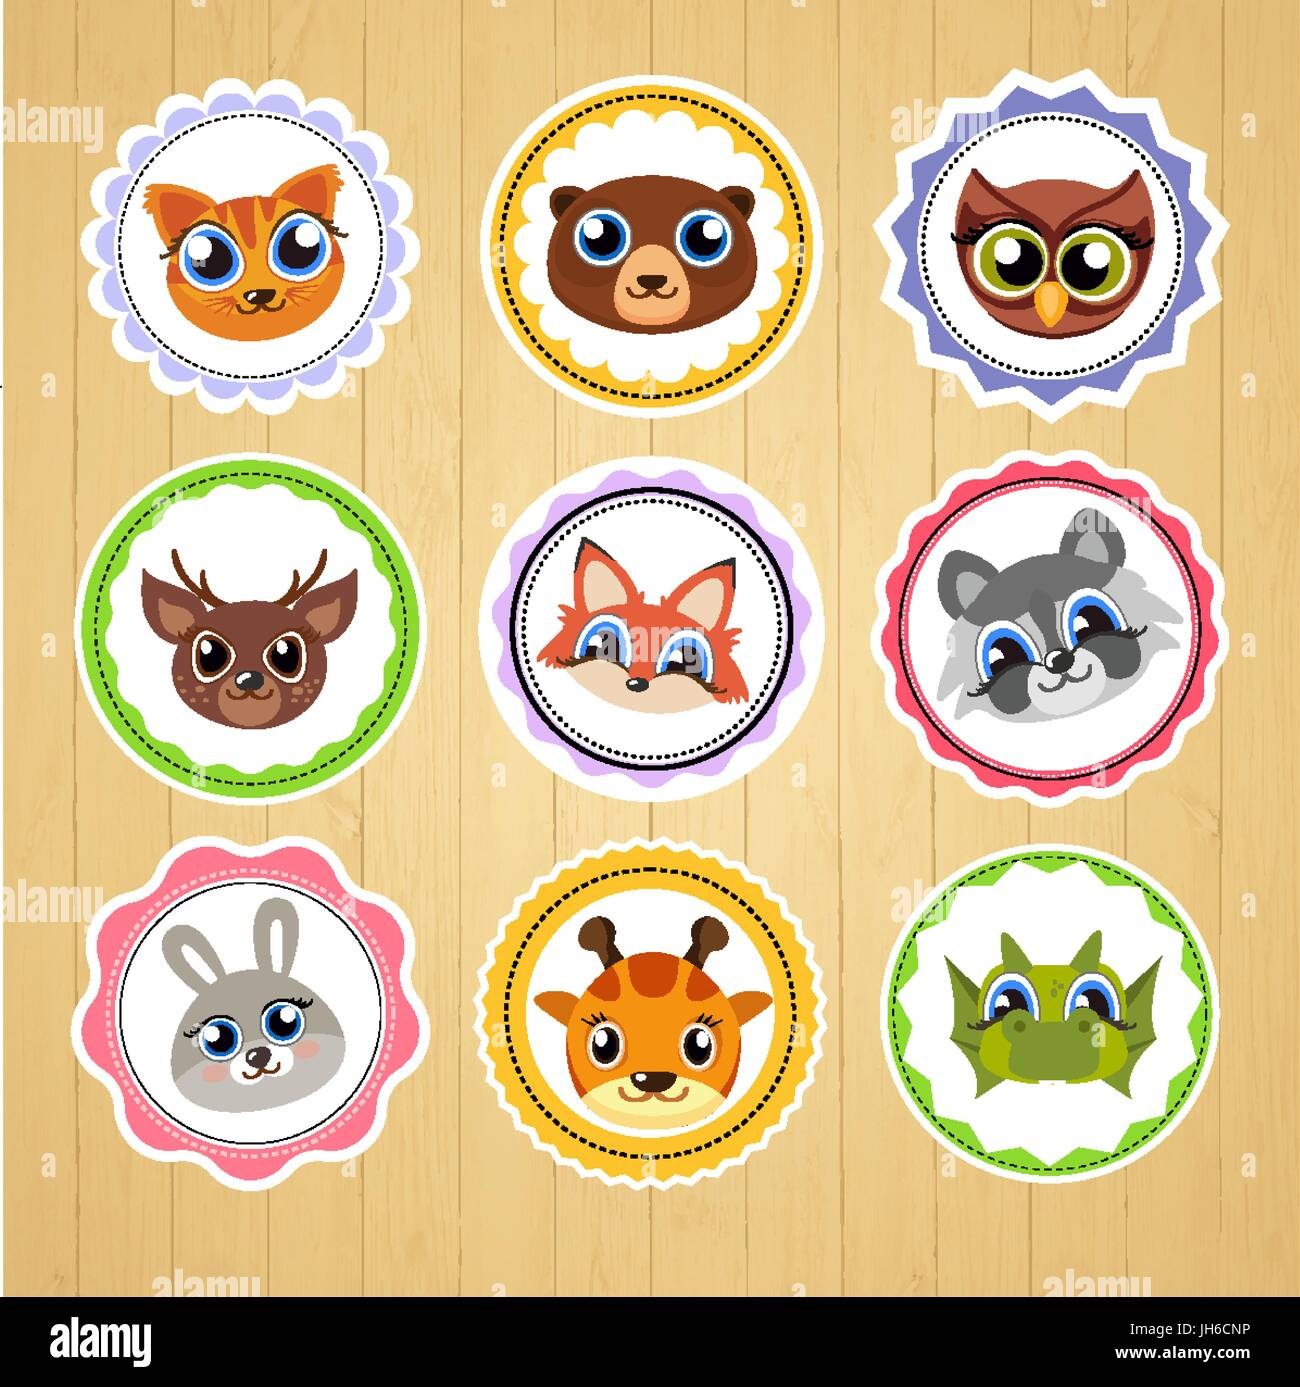 cartoon animal stickers. Suitable for decorating children s products. - Stock Vector